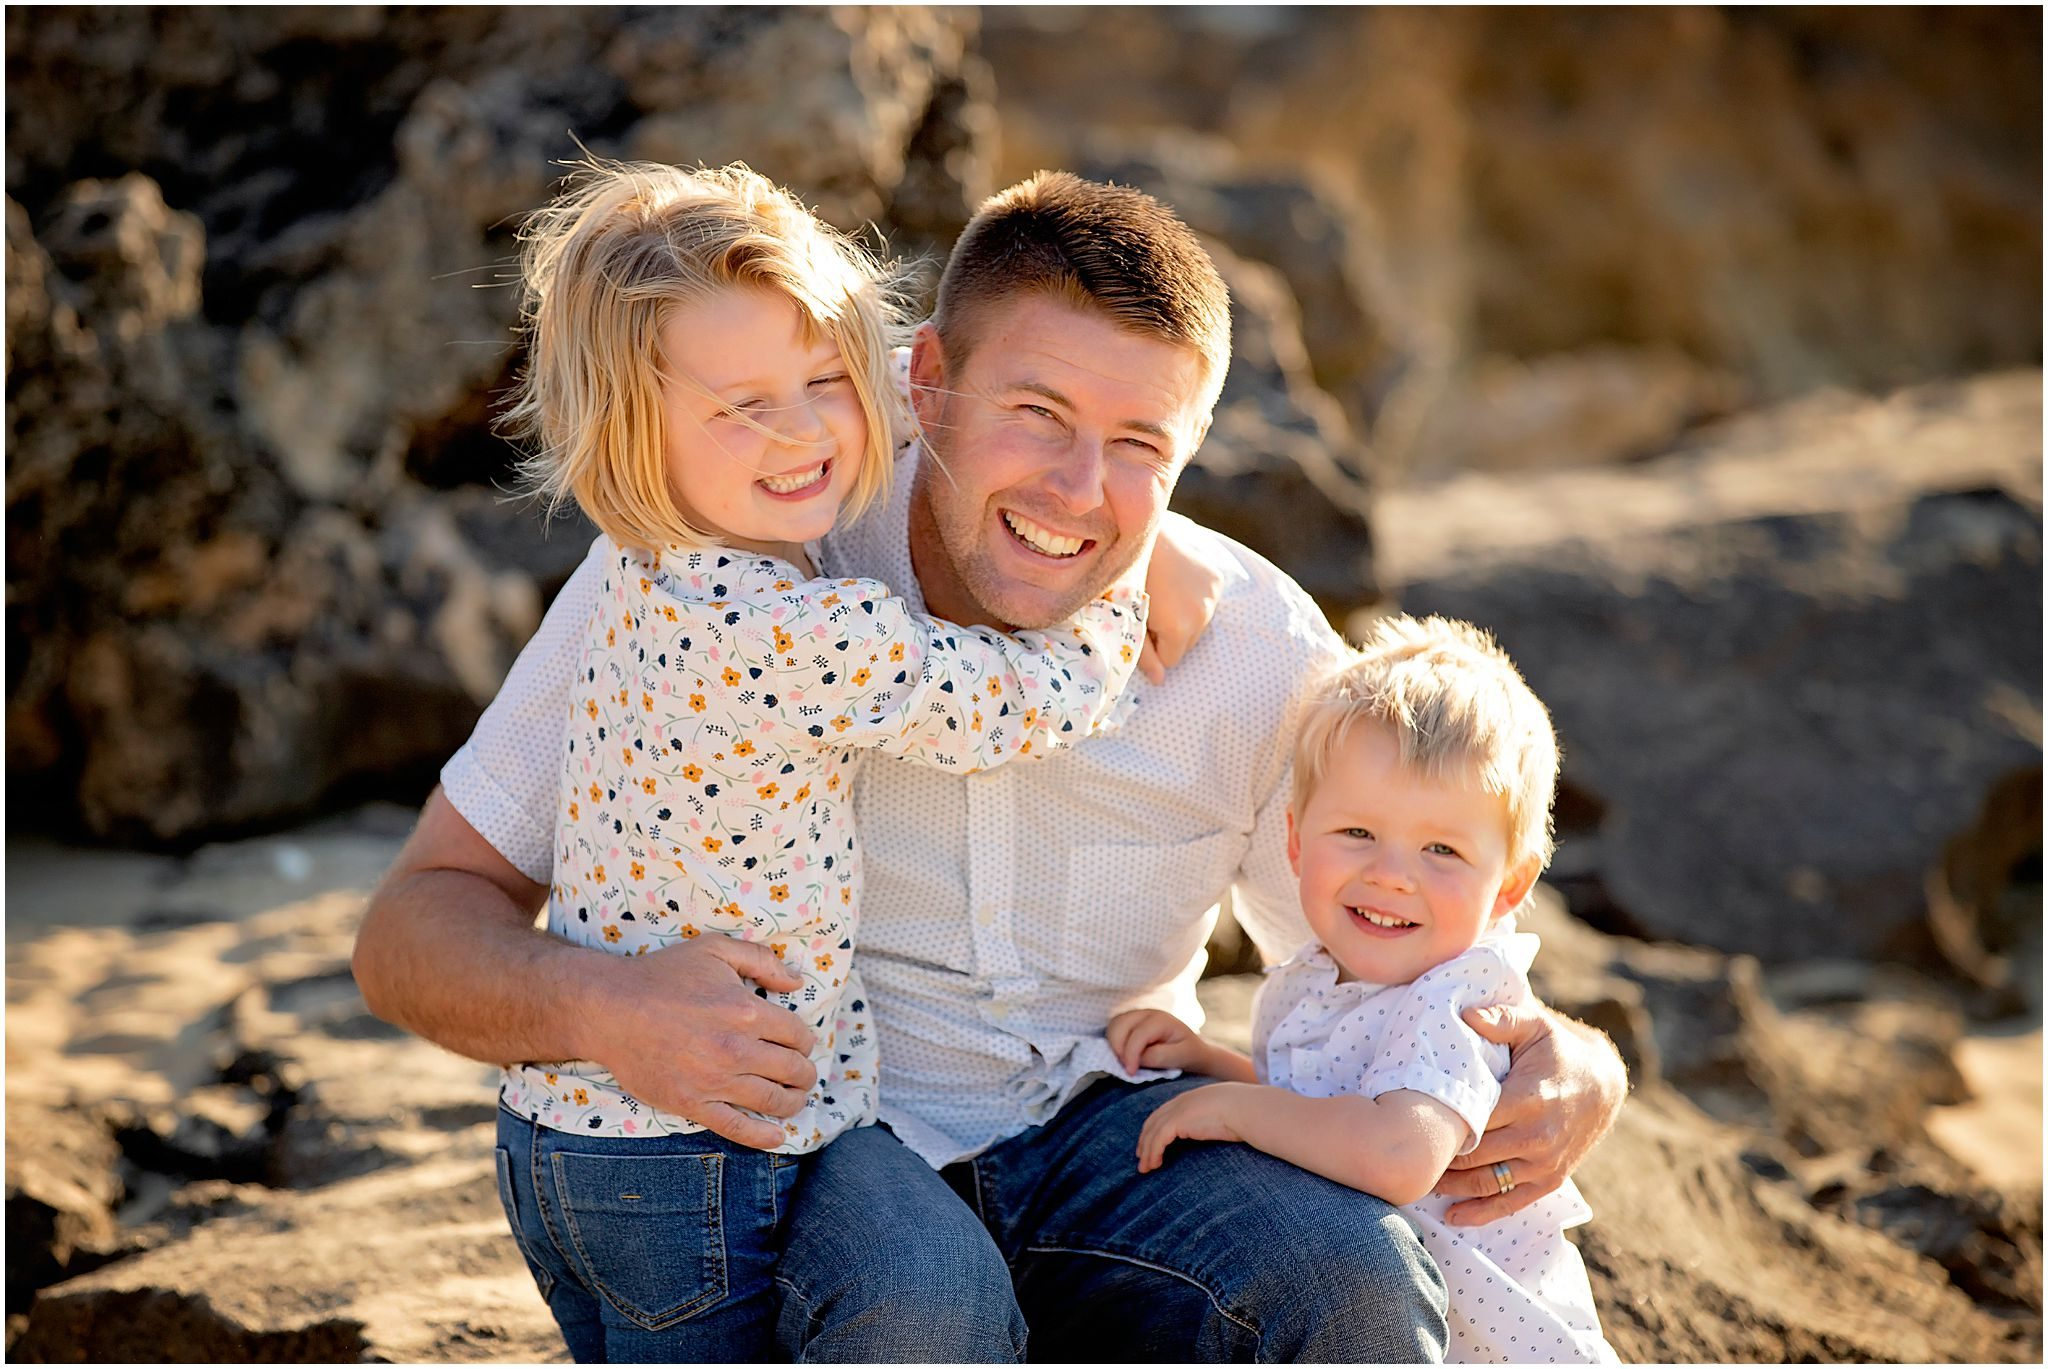 Family photography at Point Peron, Rockingham